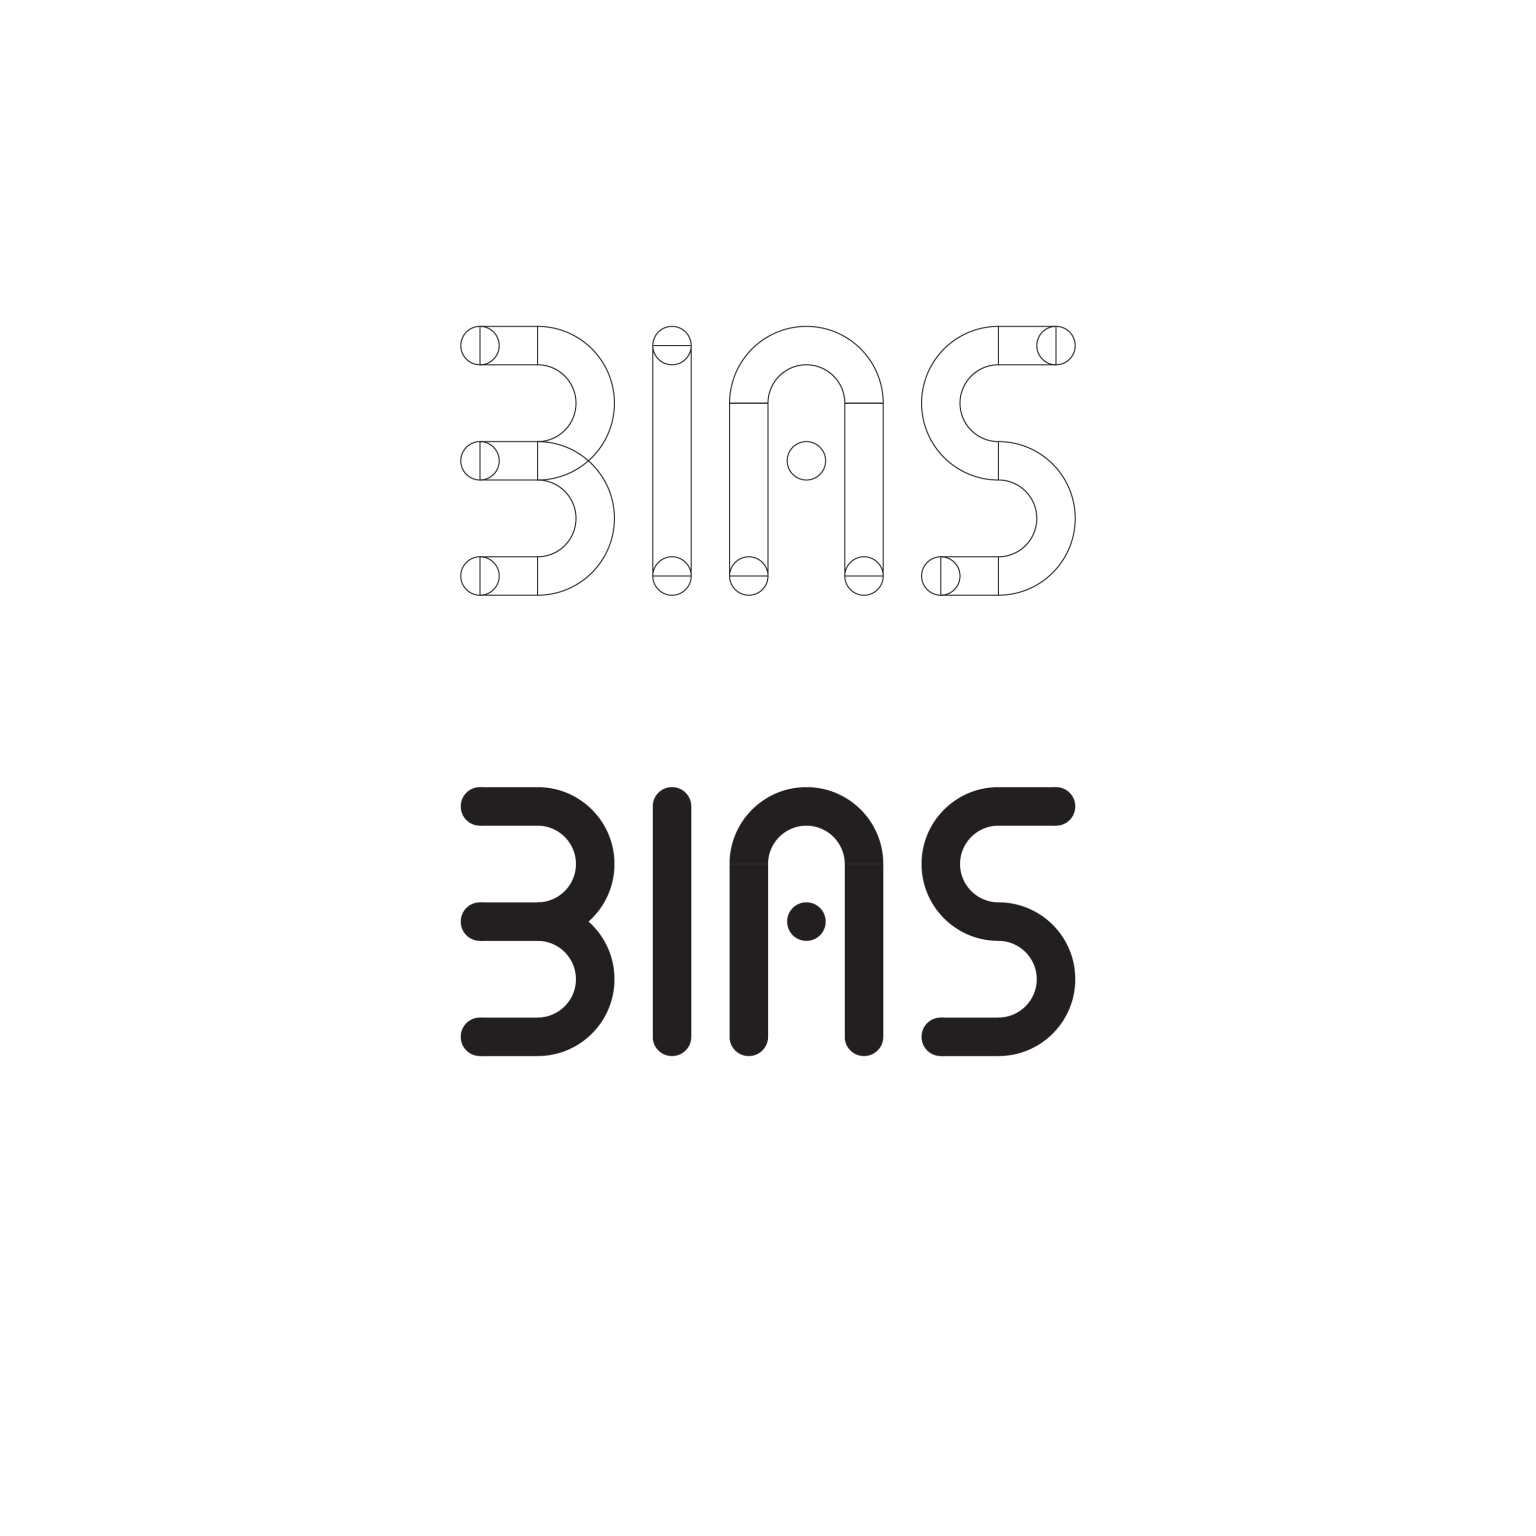 BIAS Animation